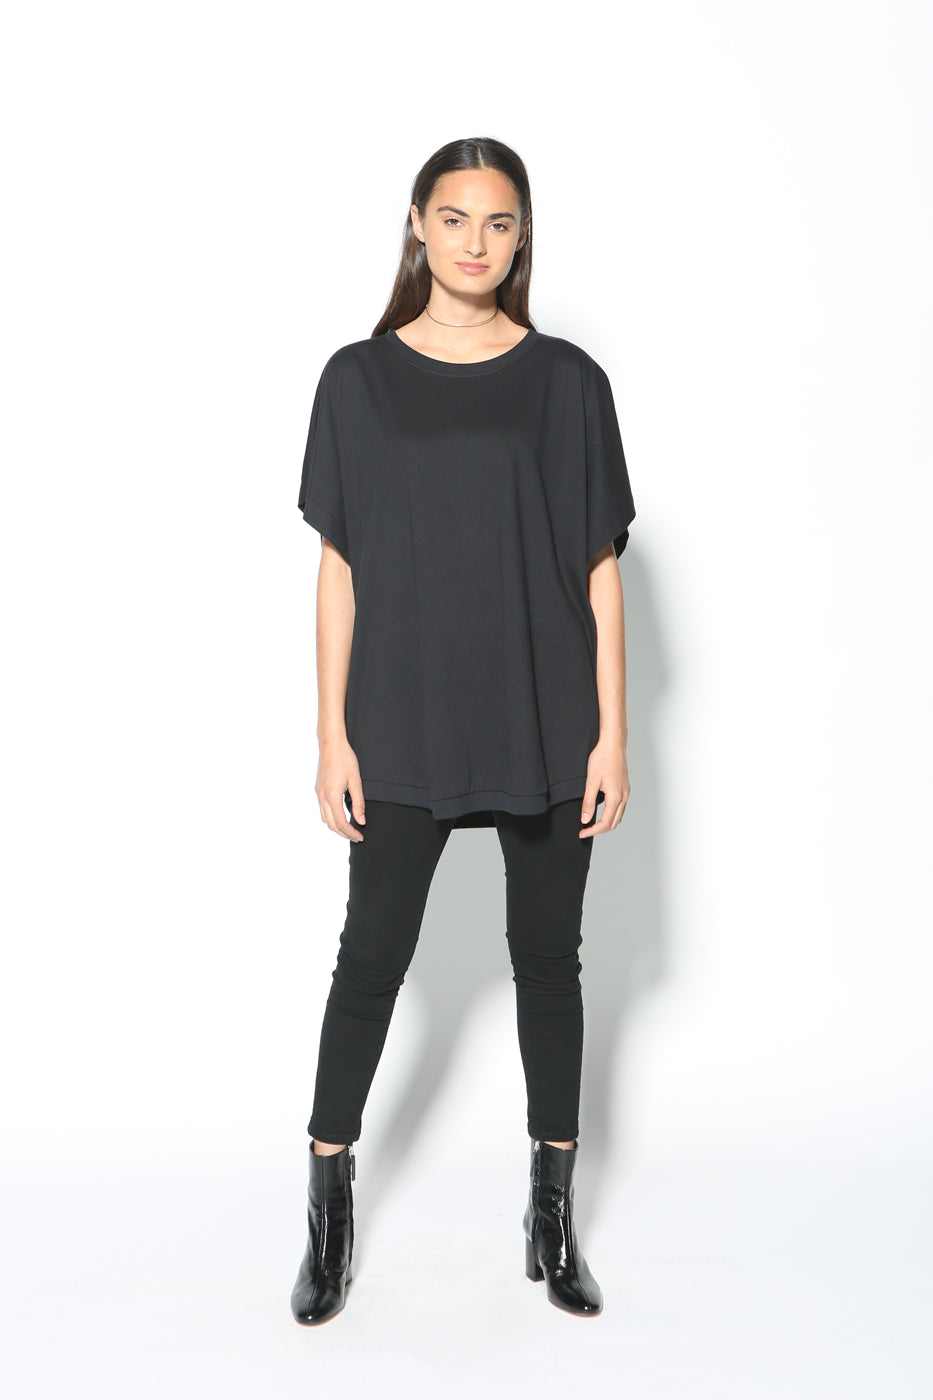 Top - Shiro Oversized Dolman Tee